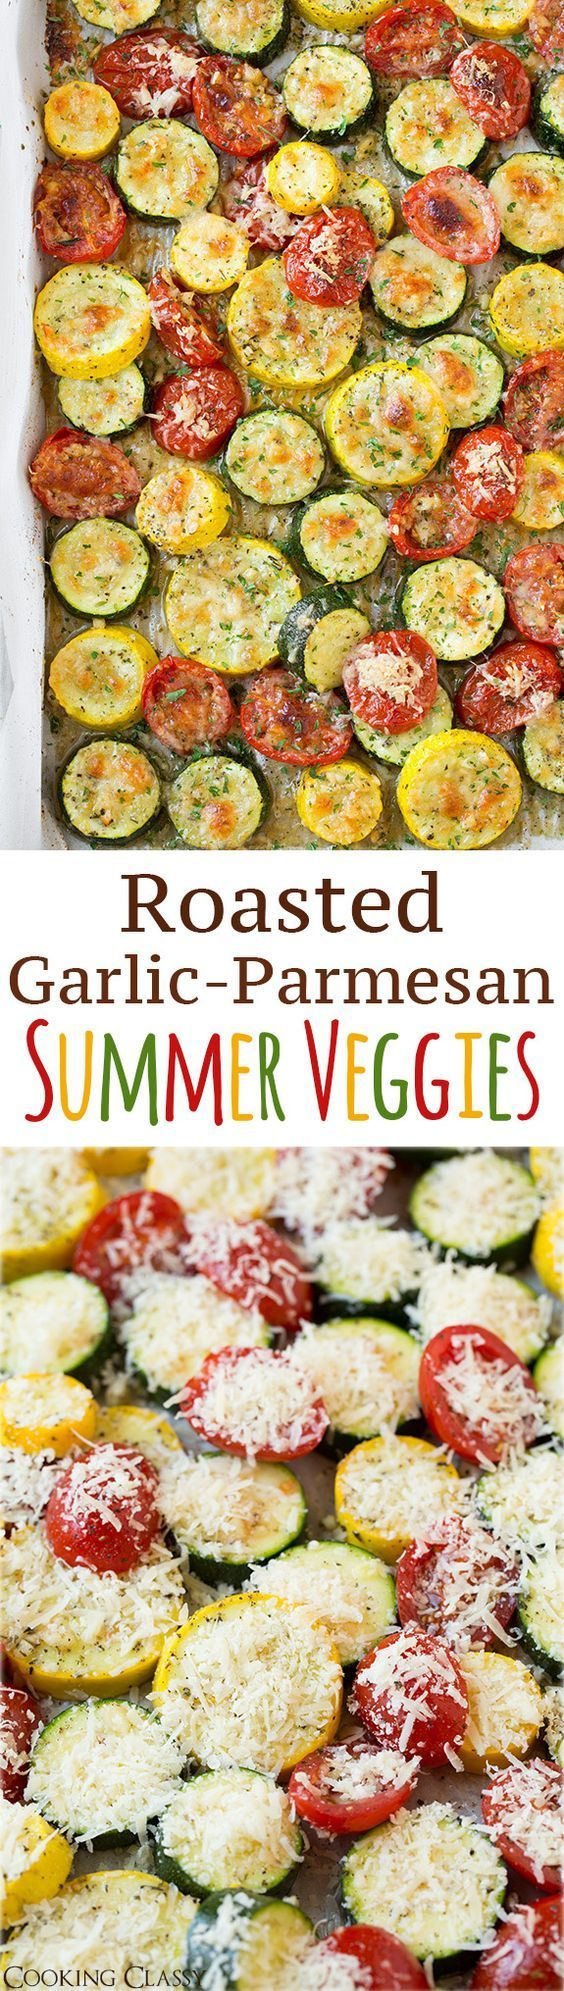 Roasted Garlic-Parmesan Zucchini, Squash and Tomatoes Recipe | Buzz Inspired